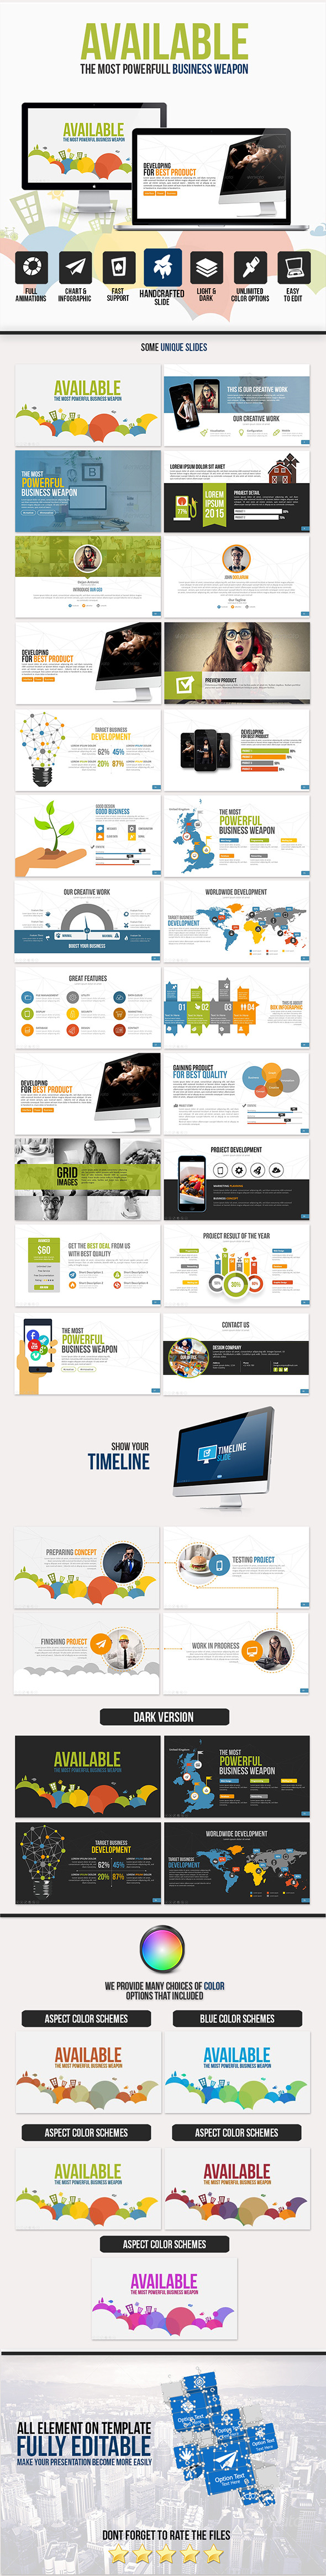 GraphicRiver Available PowerPoint Template 10924156